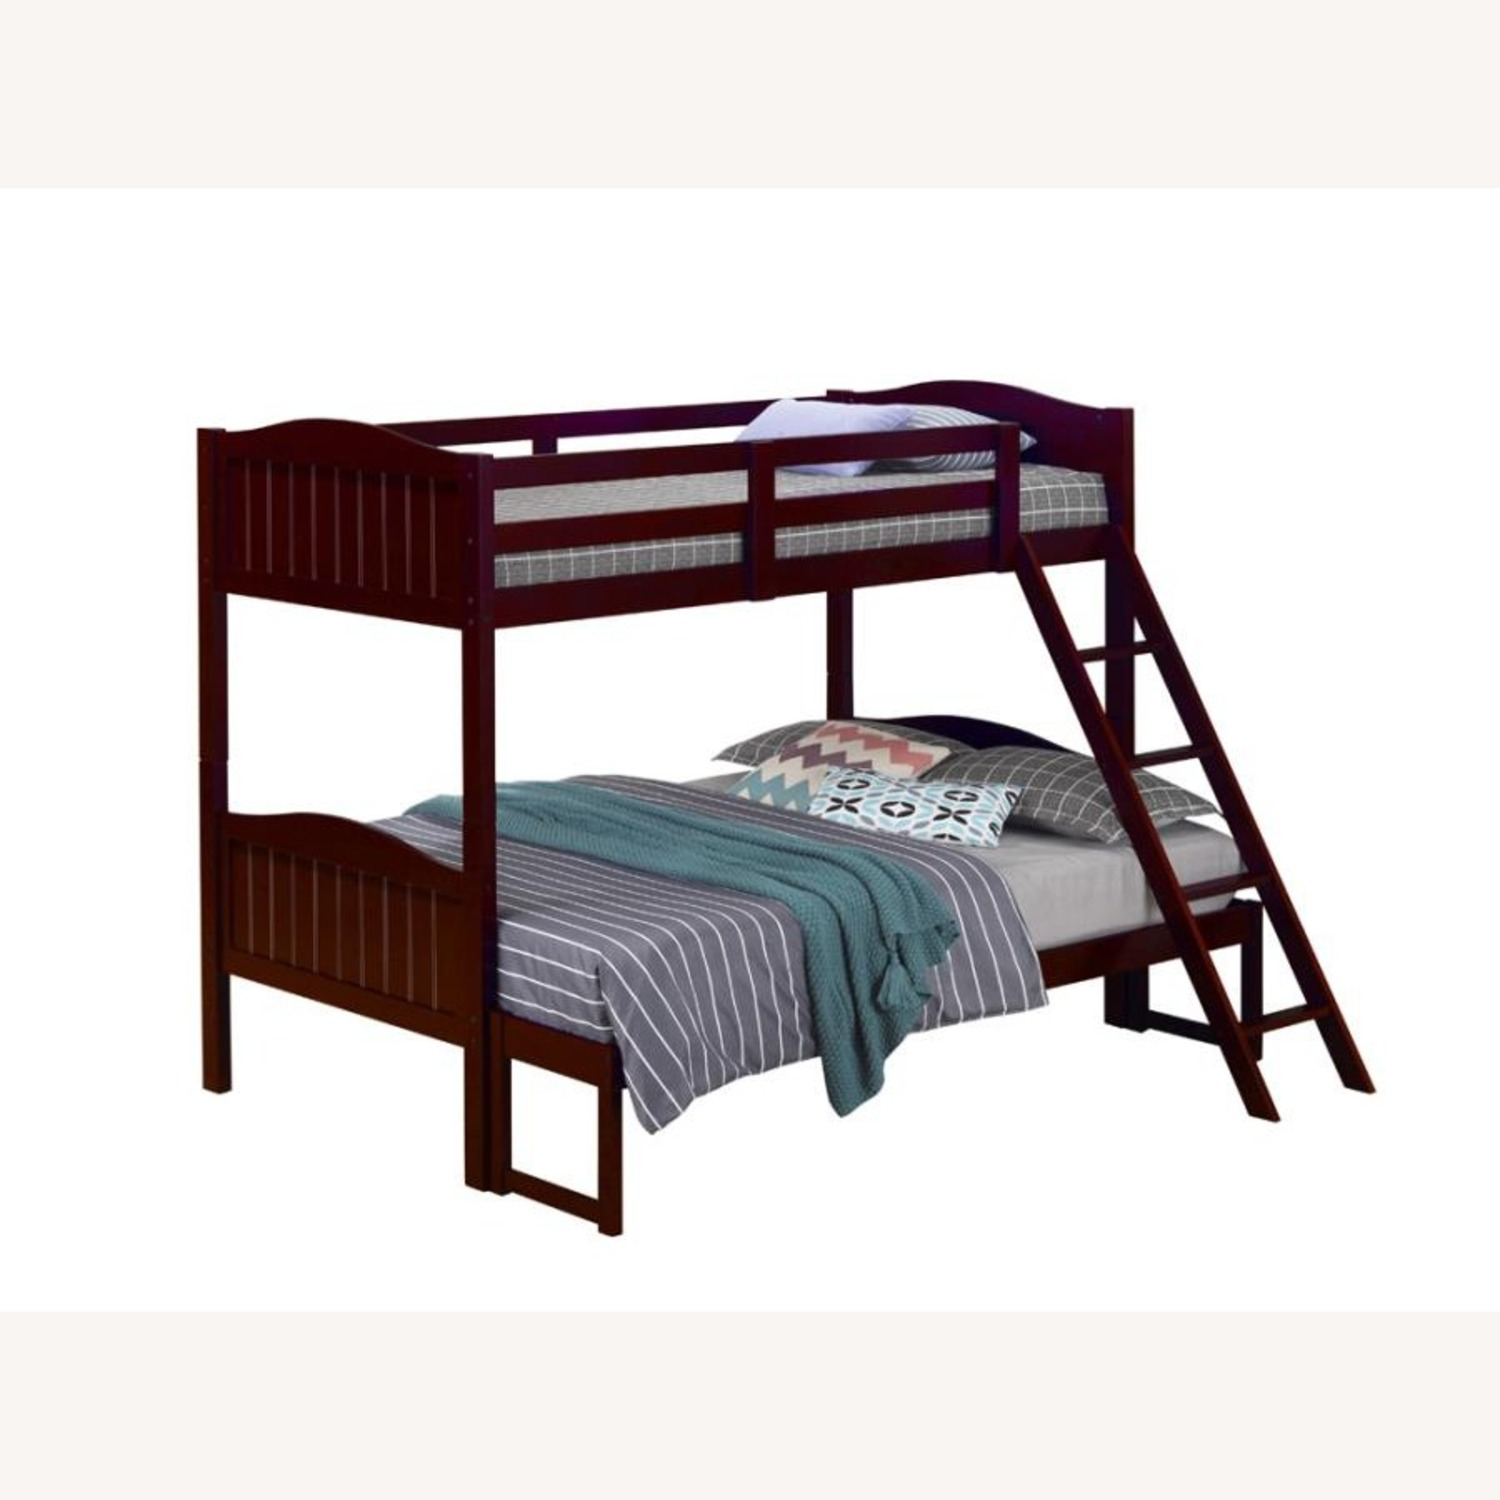 Twin-Over-Full Bunk Bed In Espresso Finish - image-0